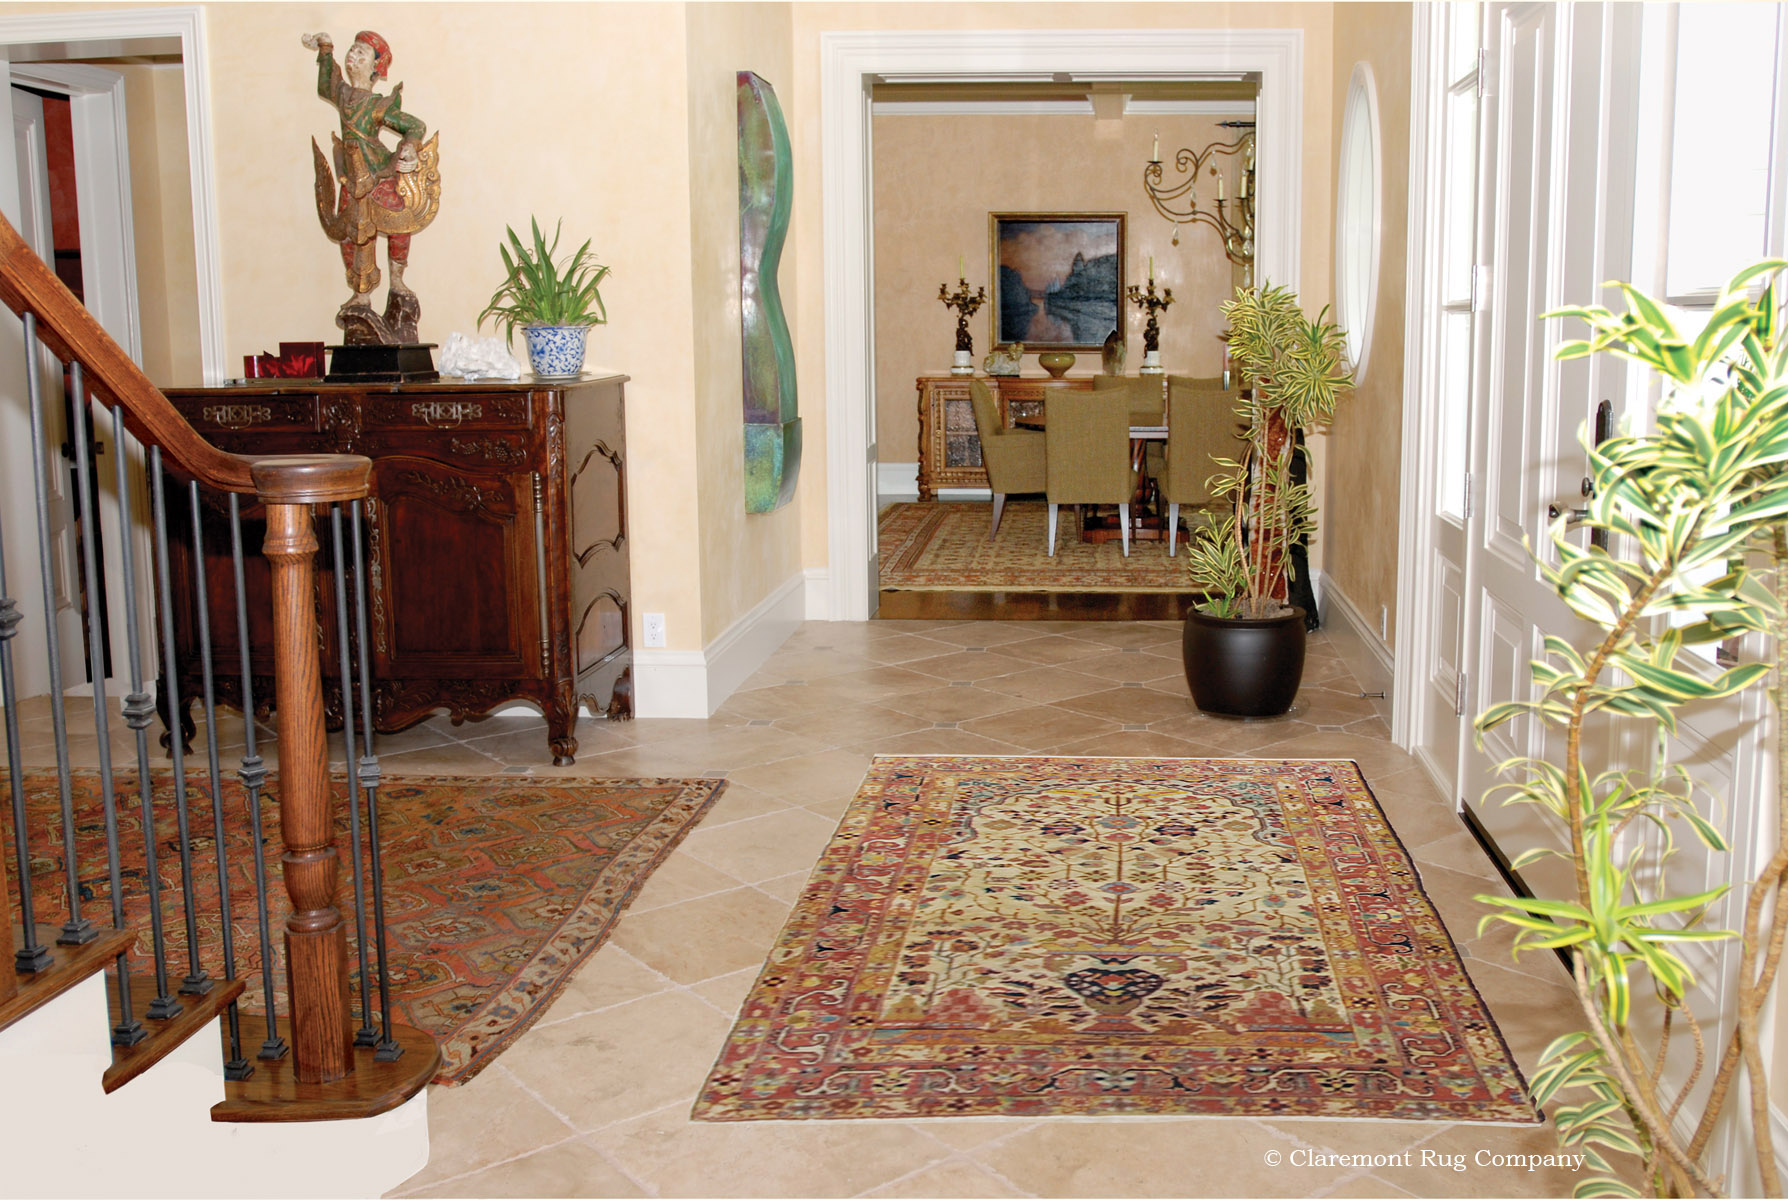 Decorating With Antique Rugs Claremont Rug Company Artdaily